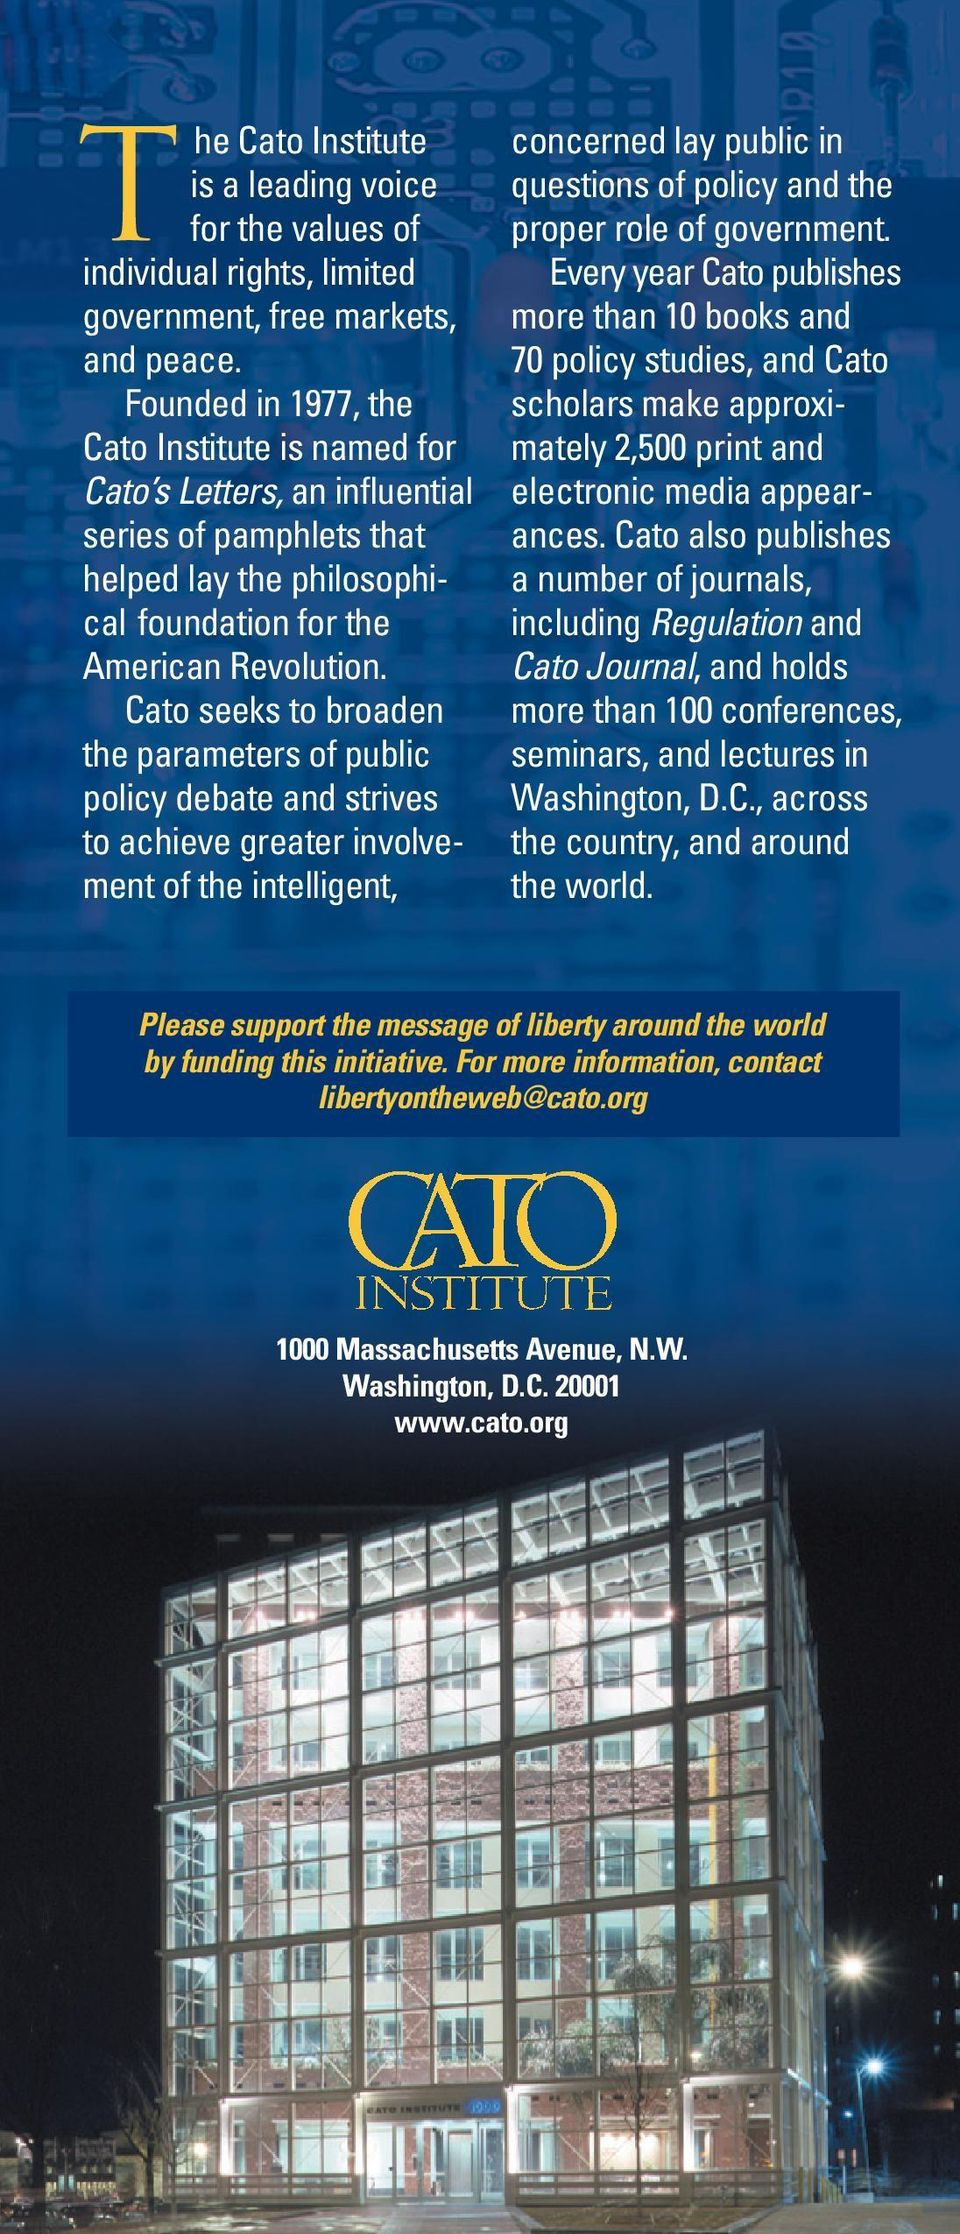 Cato seeks to broaden the parameters of public policy debate and strives to achieve greater involvement of the intelligent, concerned lay public in questions of policy and the proper role of